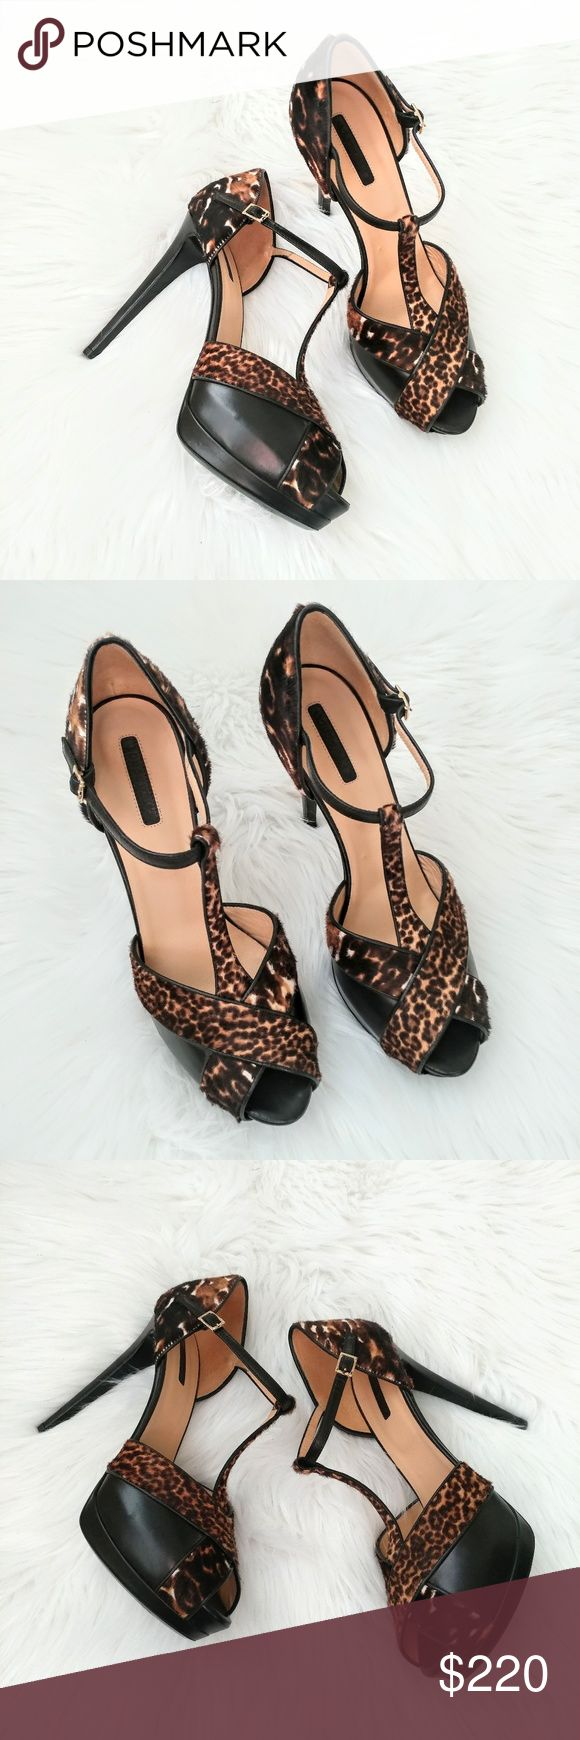 New Long Champ Le Pliage stiletto sandals Animal print, leopard, leather, peep toe, platform sandals.  Condition: new, no box Size: 40 Longchamp Shoes Heels